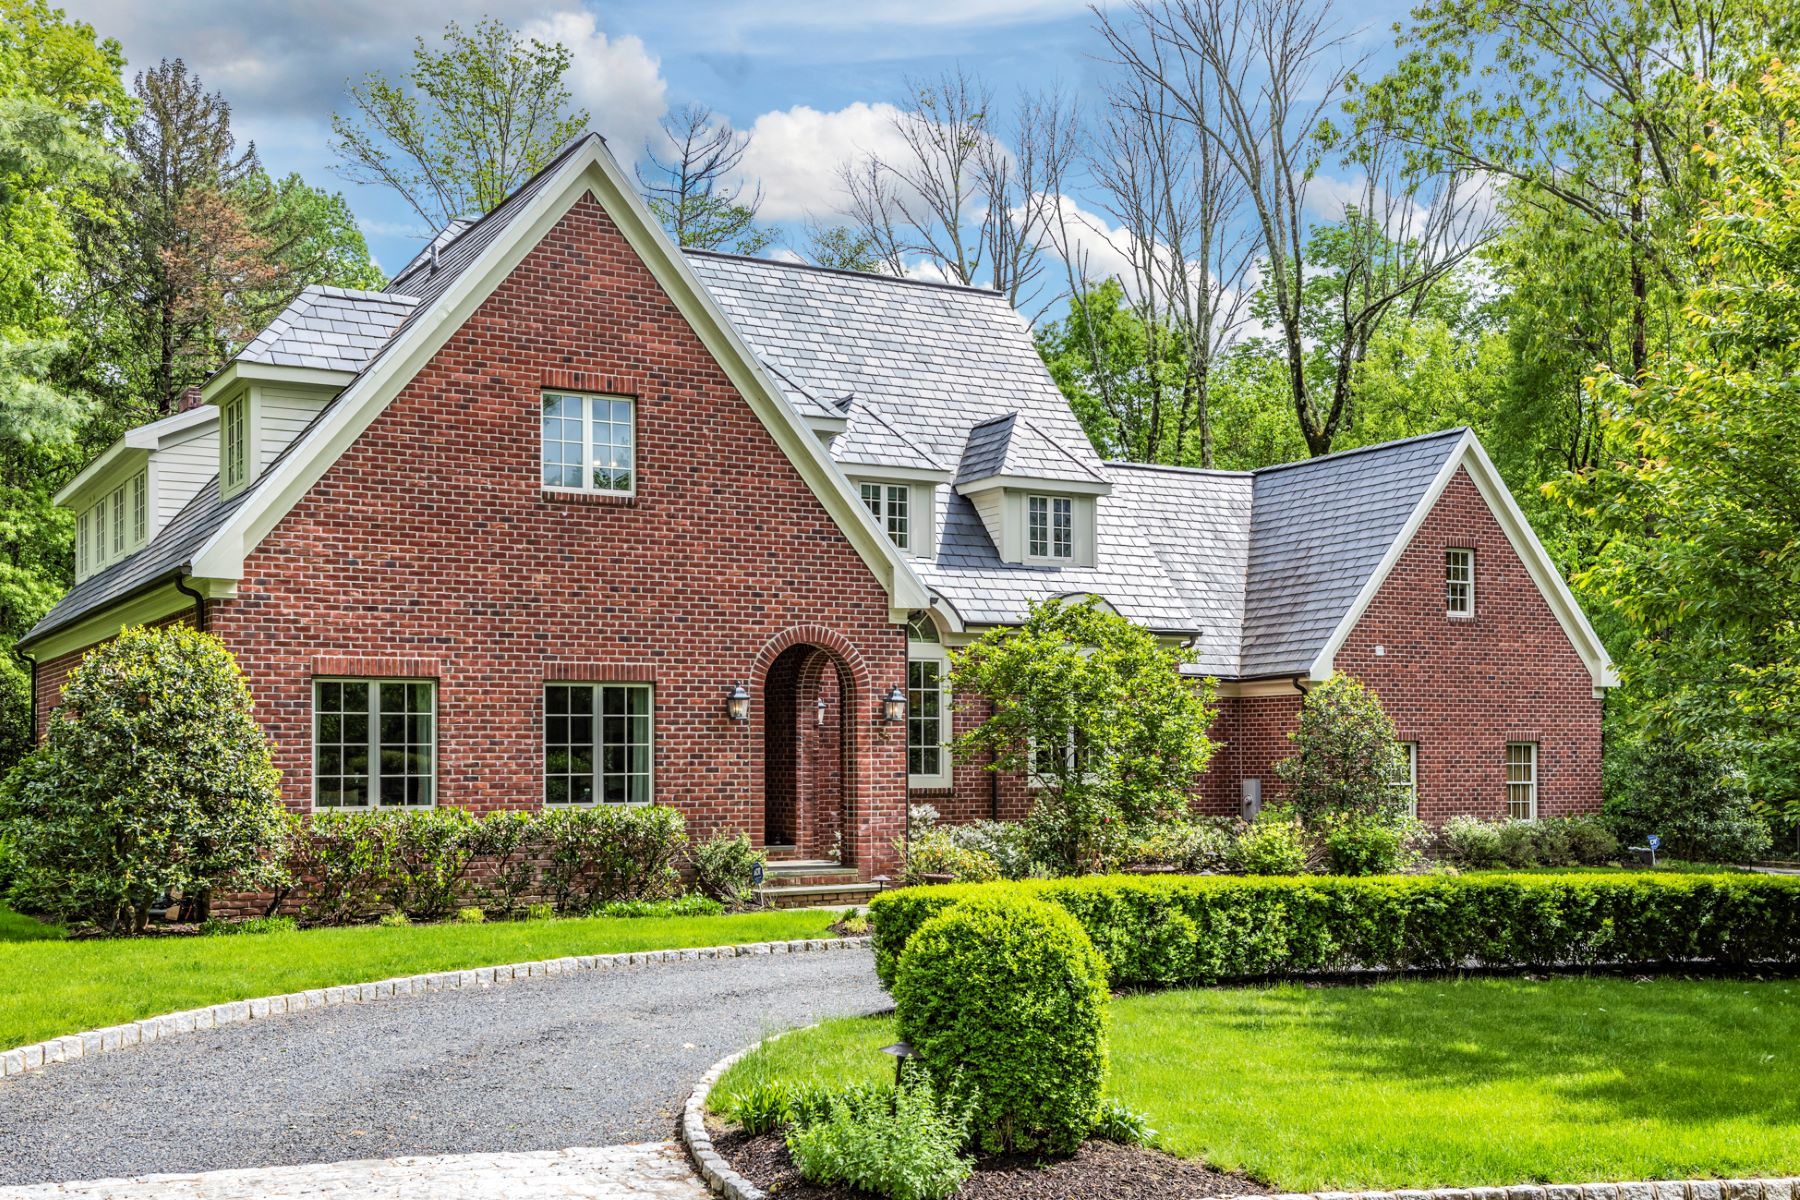 Additional photo for property listing at Exceeding Expectations at Every Turn 54 Lafayette Road West, Princeton, New Jersey 08540 United States